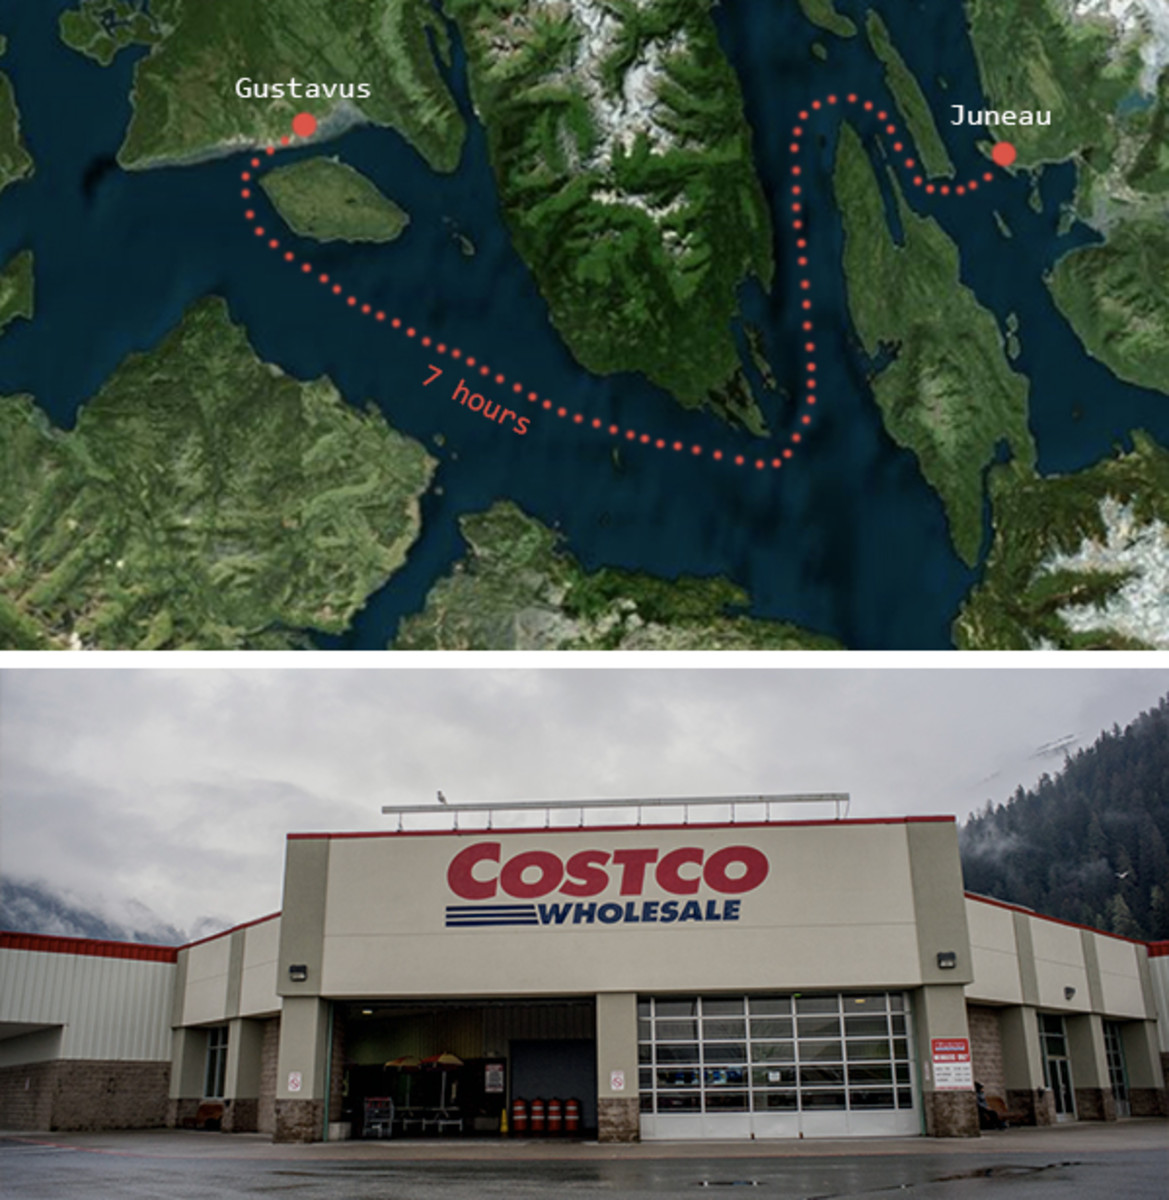 Top: The 7-hour one-way journey from Gustavus to Juneau (The Hustle / Bing Maps); Bottom: The Costco in Juneau, Alaska (Getty Images)